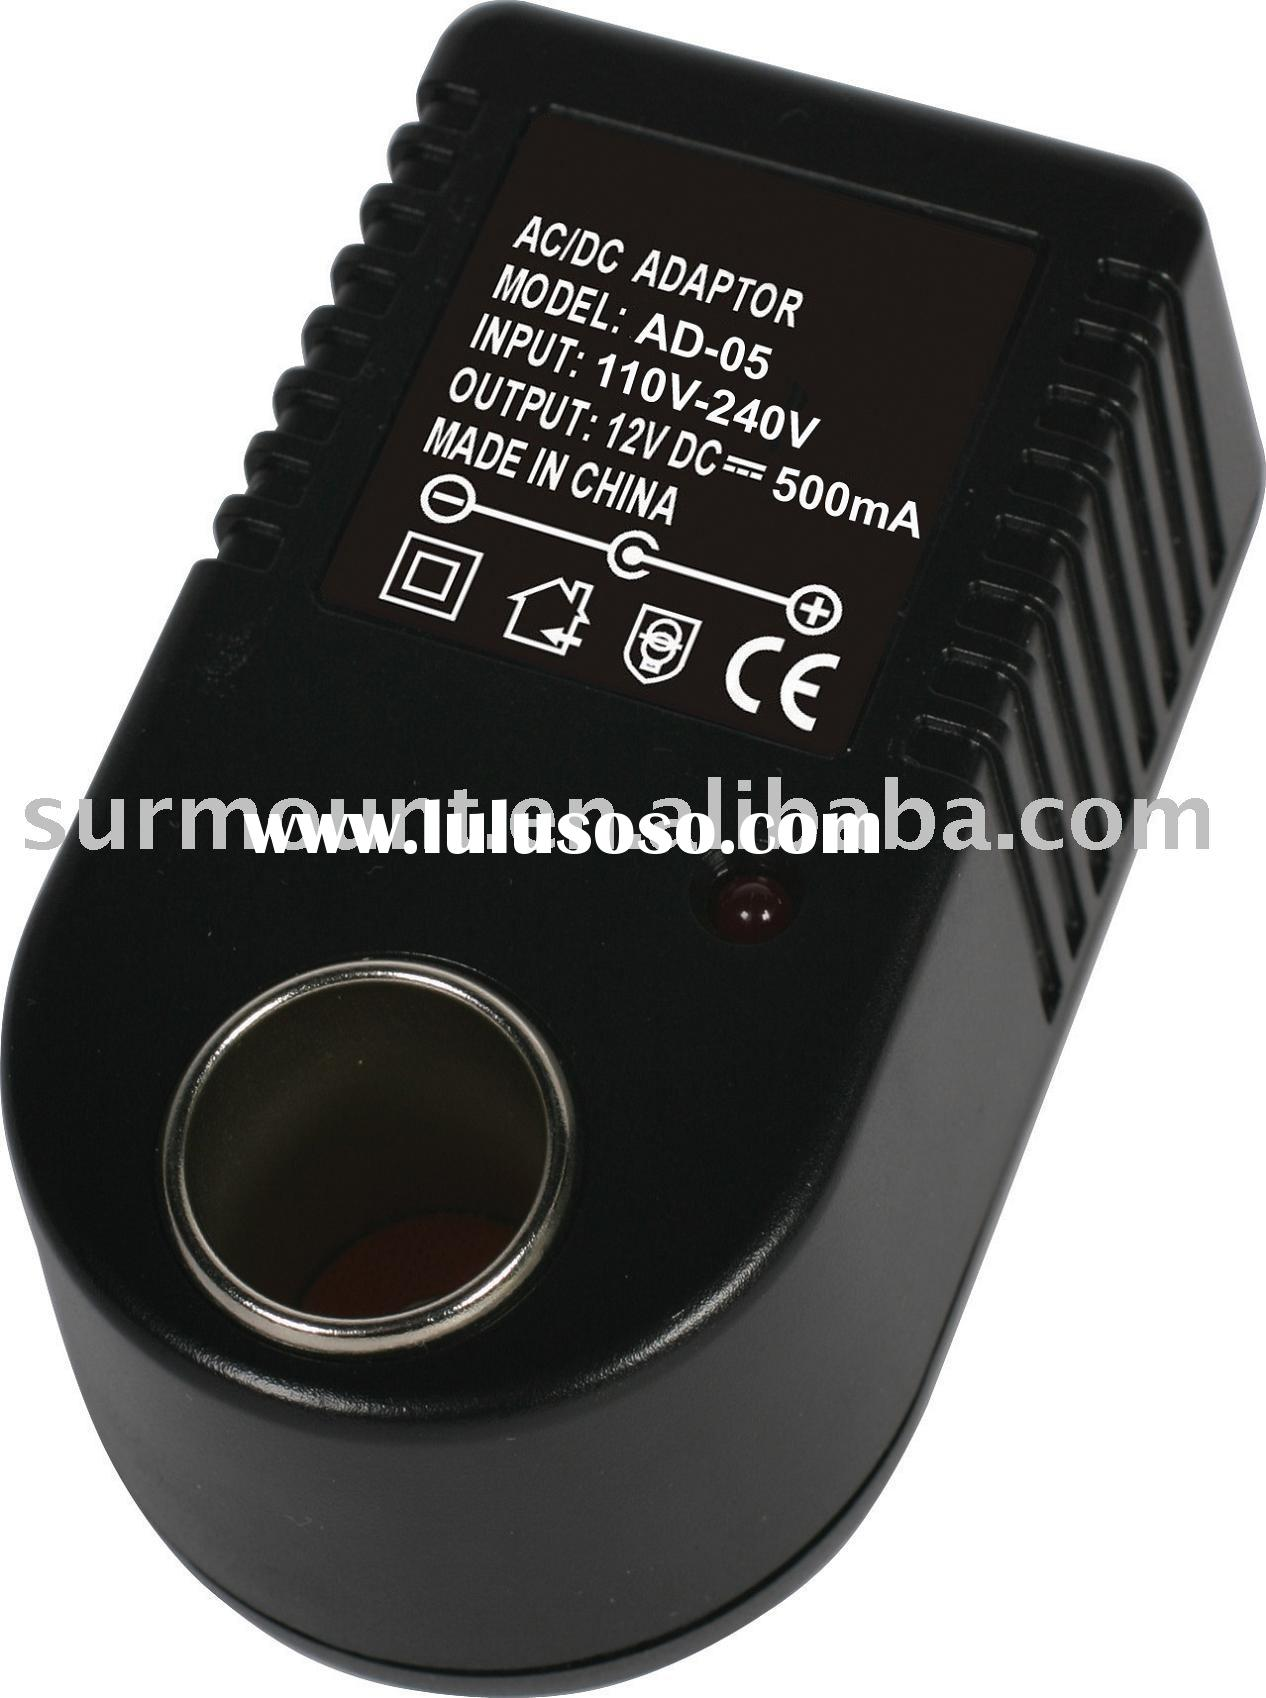 Ac To Dc Converter Radioshack Igbt Inverter Circuit Manufacturers In Lulusoso Page 1